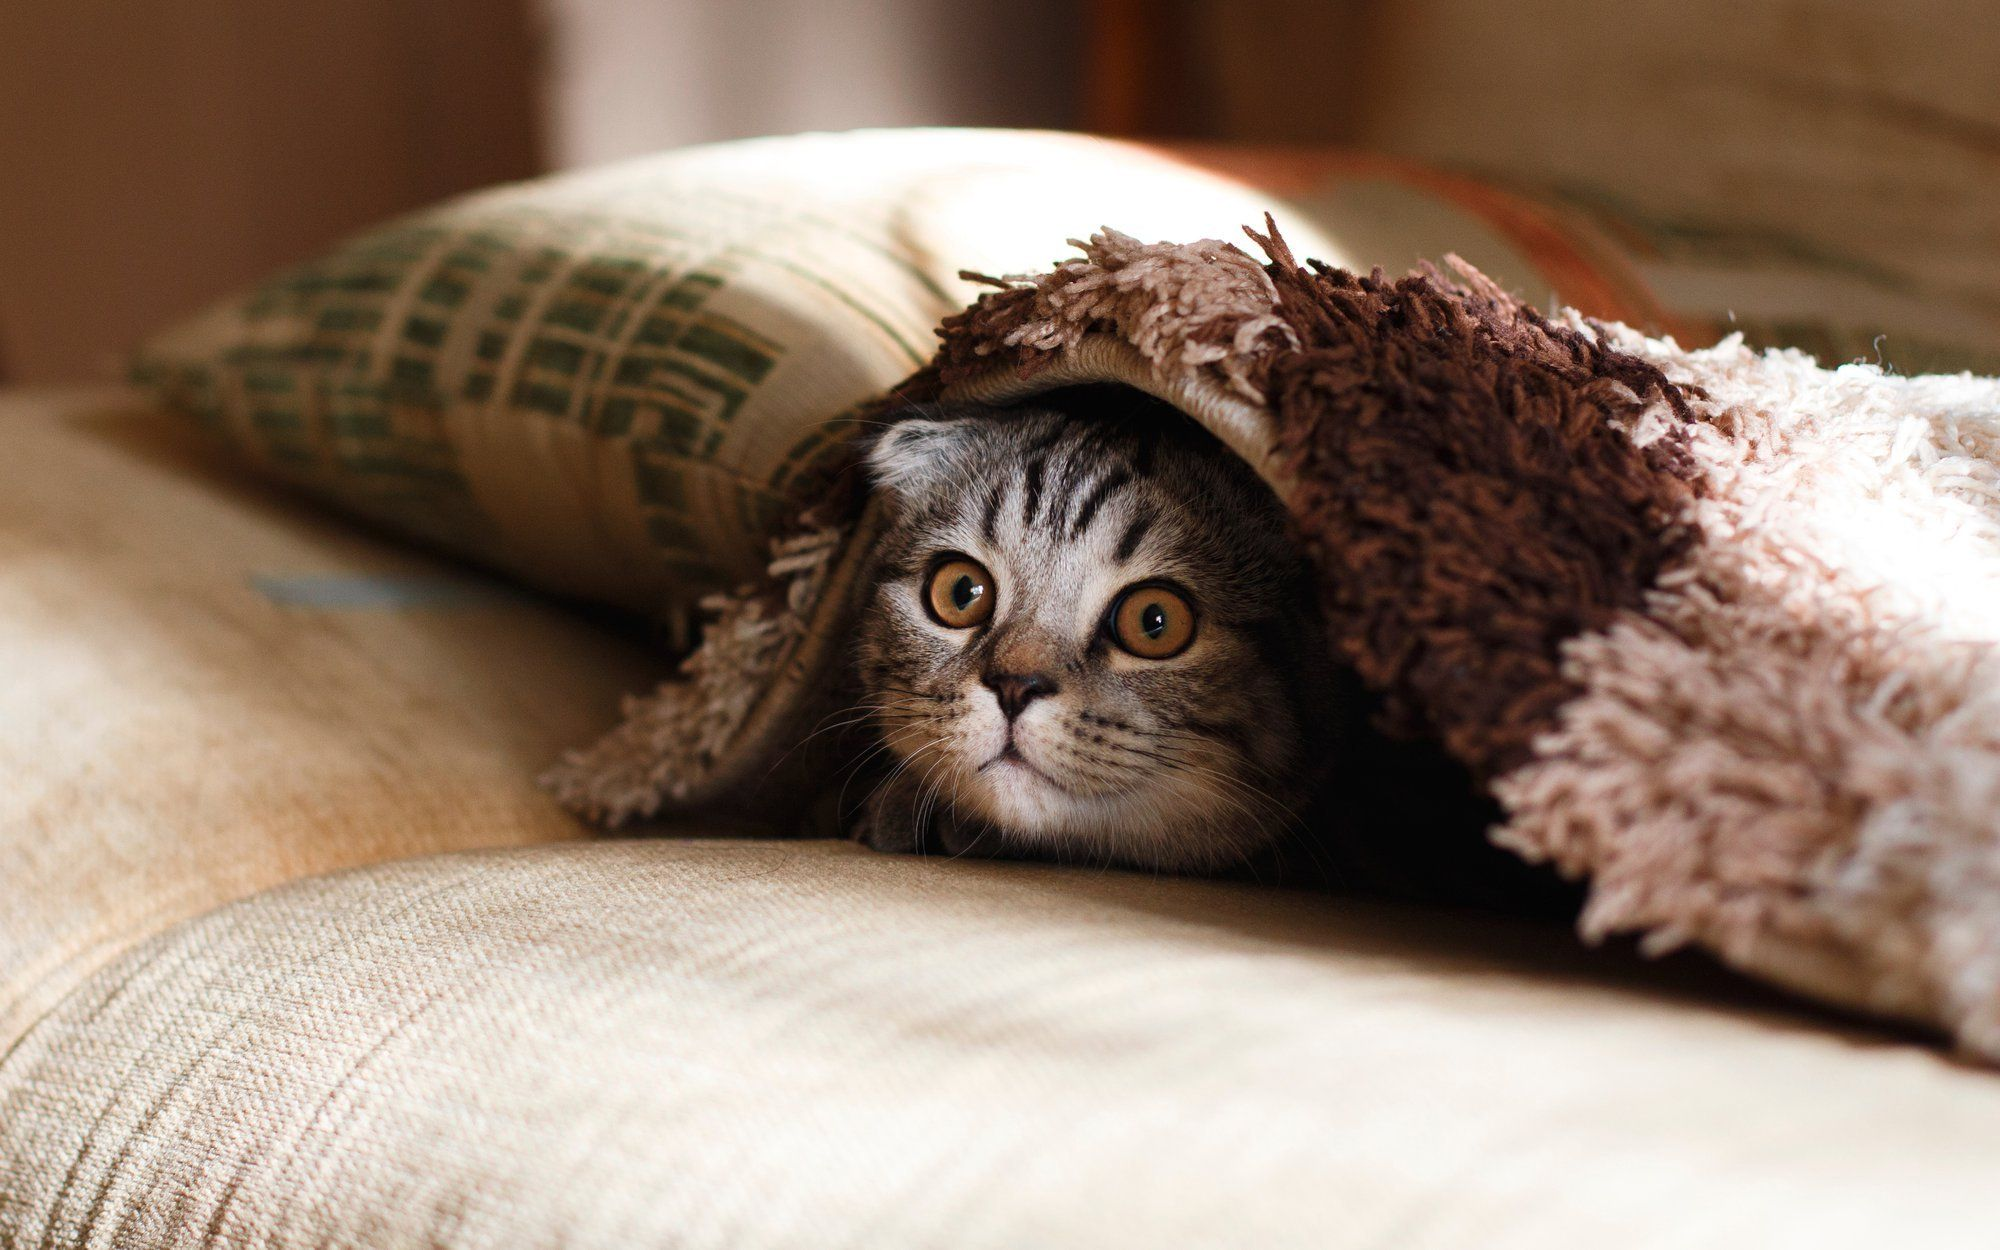 Preventing Cat Anxiety: Ways to Entertain Your Cat While You're Away